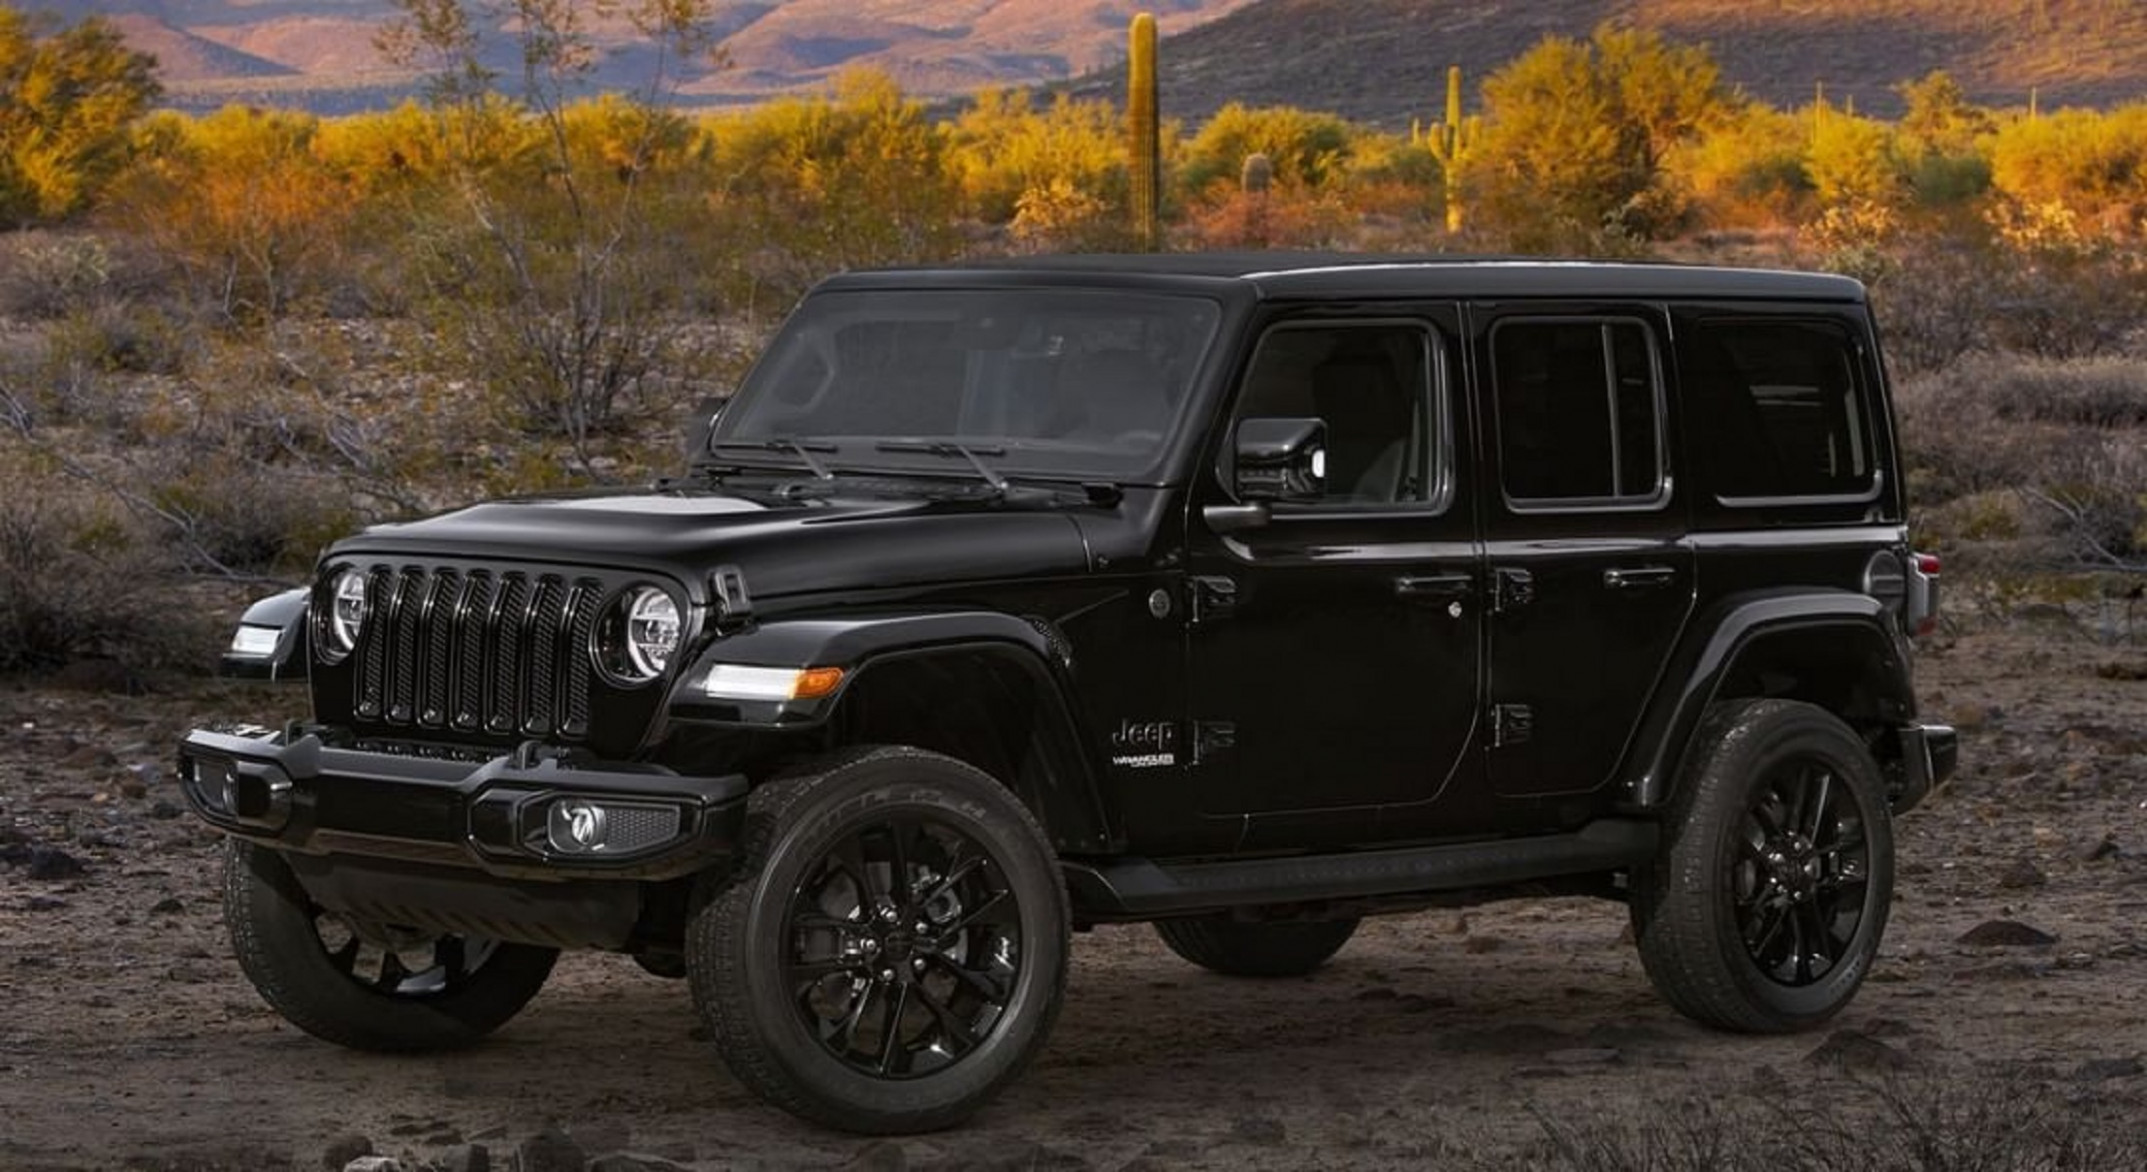 Review Jeep Rubicon 2022